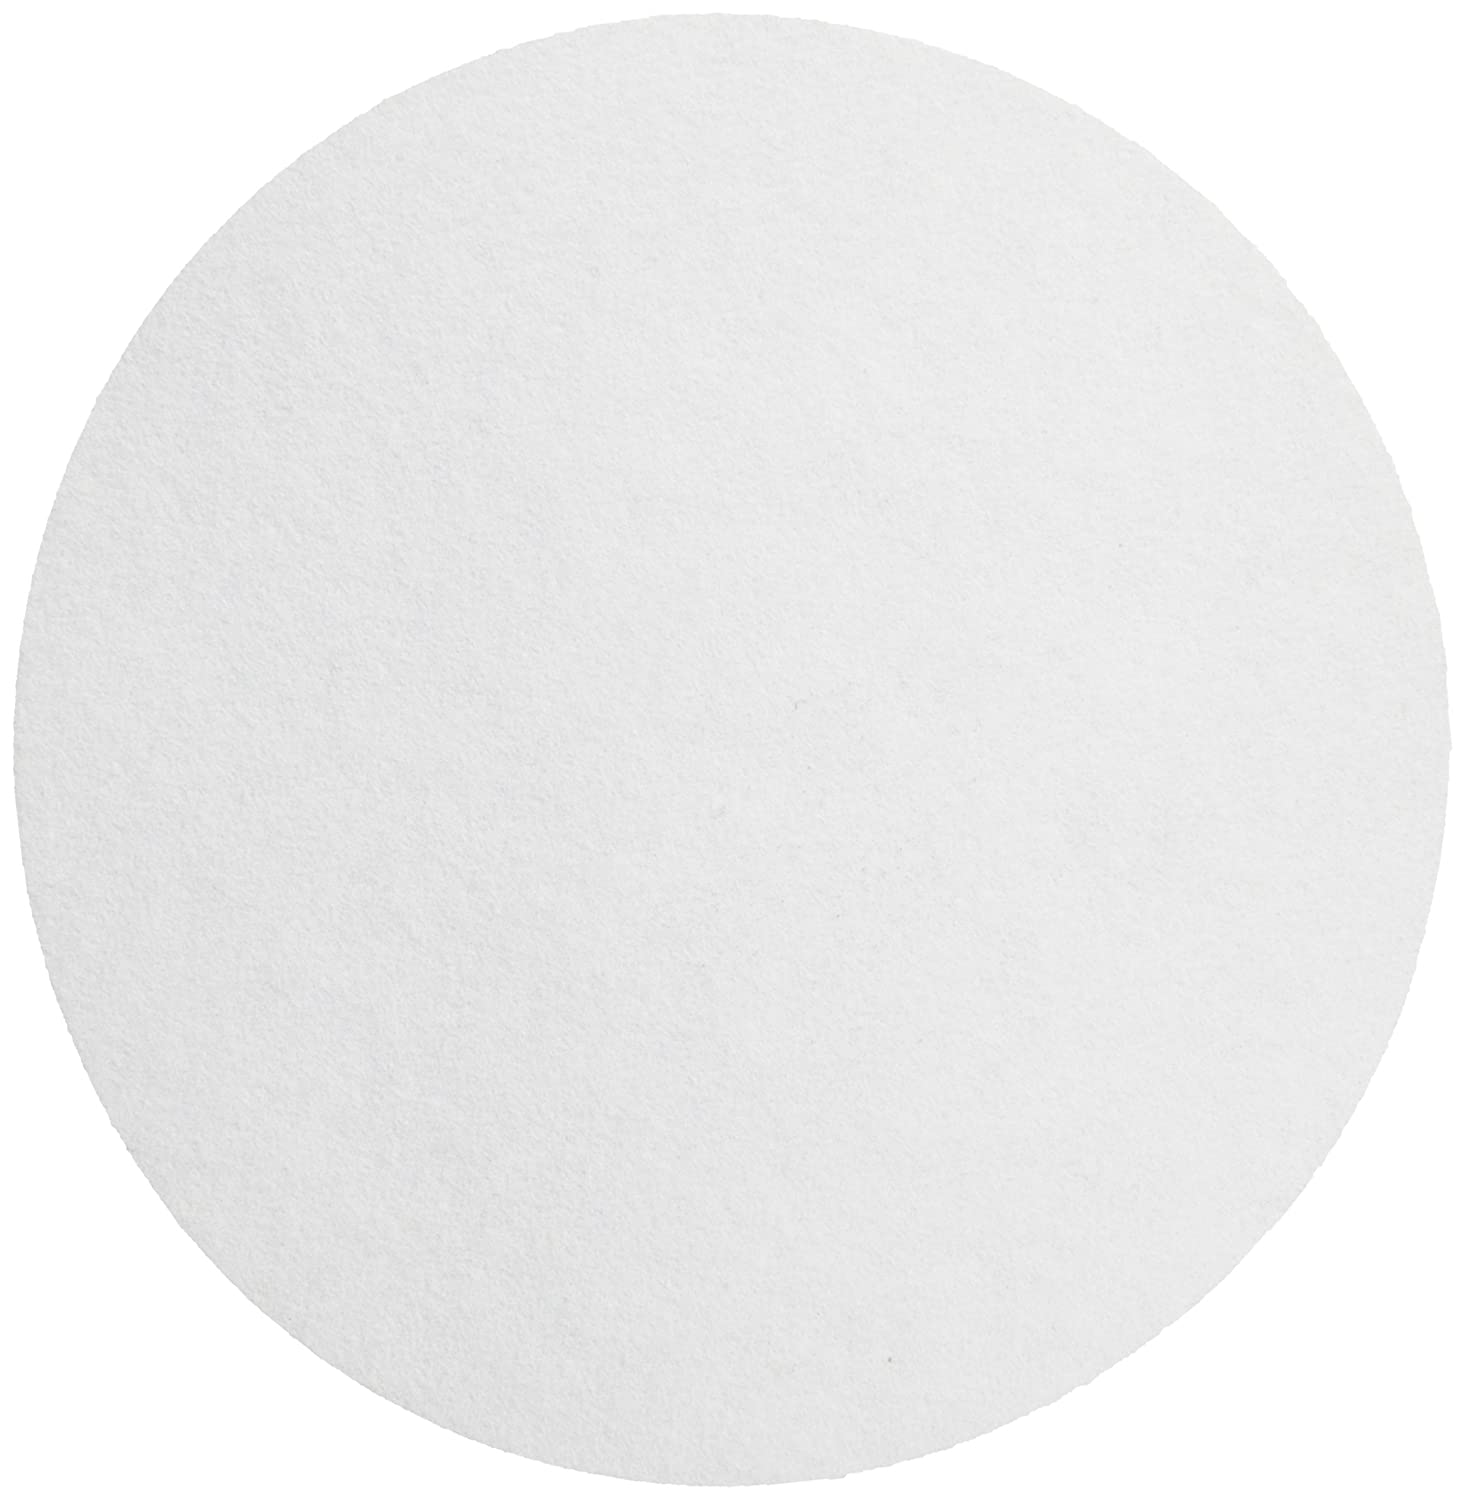 20 Micron Whatman 1441-125 Ashless Quantitative Filter Paper 12.5cm Diameter Pack of 100 Grade 41 F1240-6